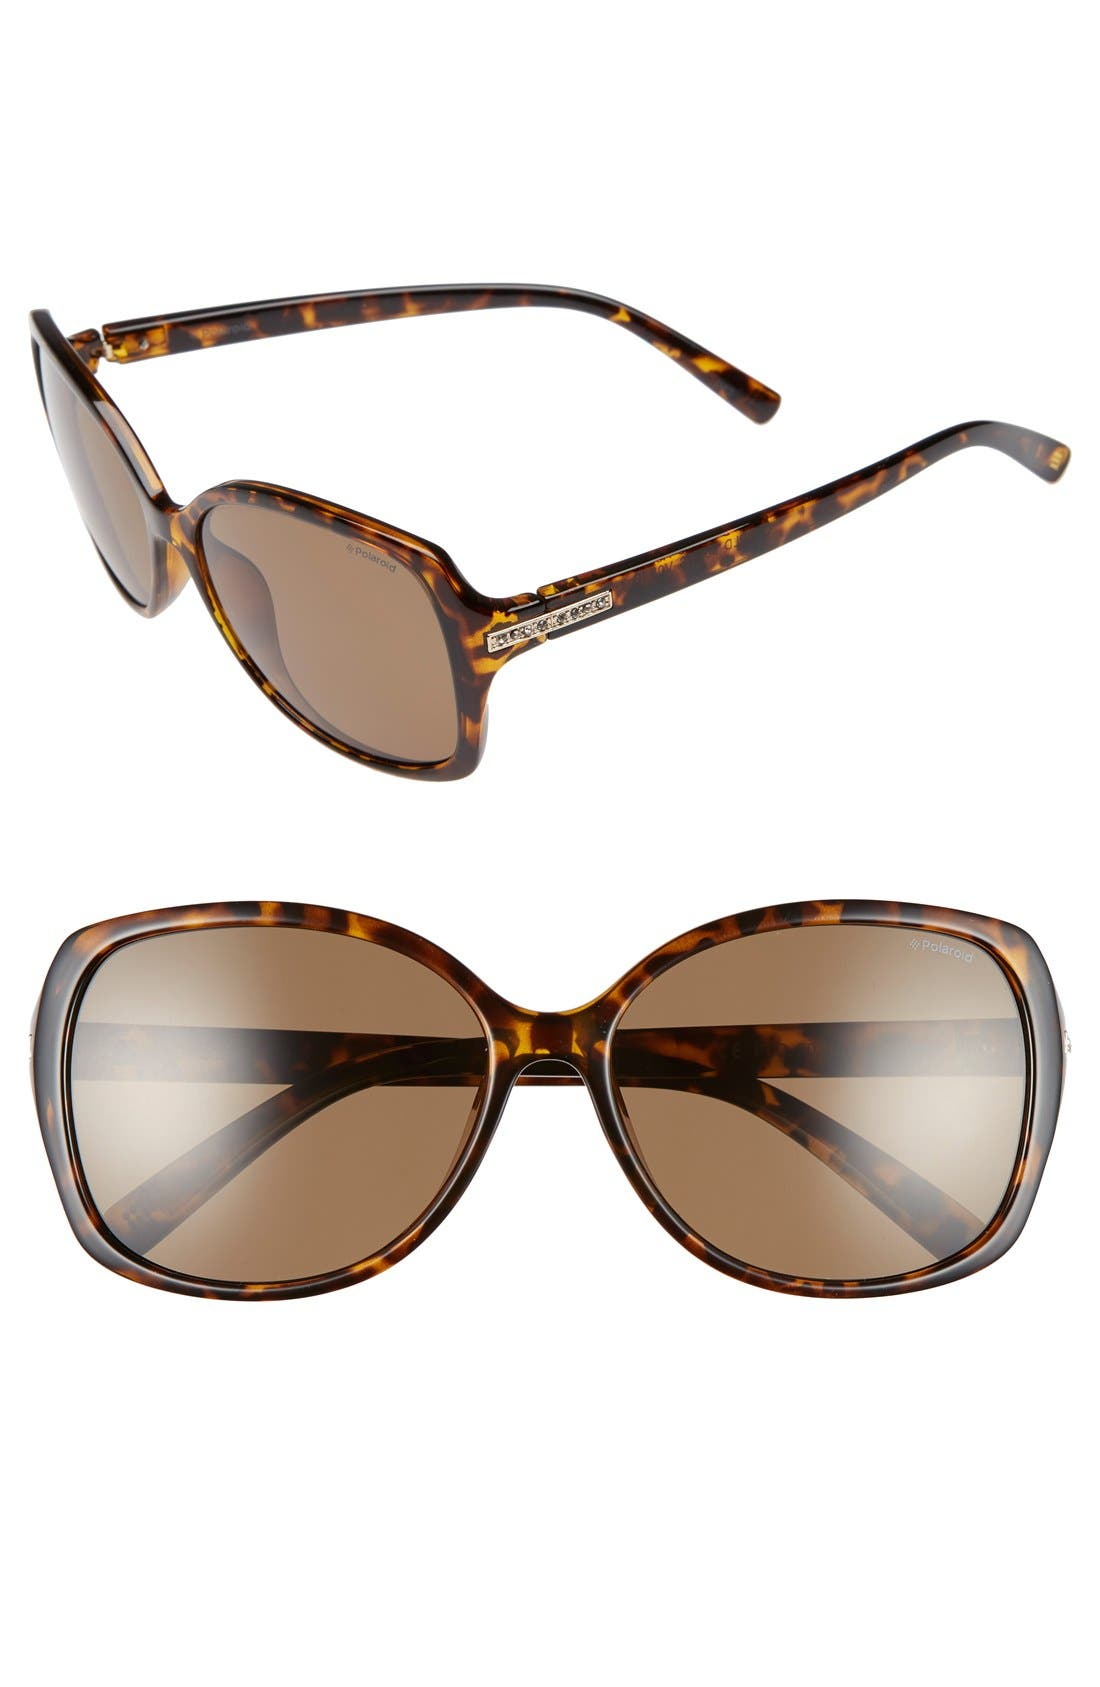 58mm Polarized Sunglasses,                         Main,                         color, HAVANA/ BROWN POLARIZED